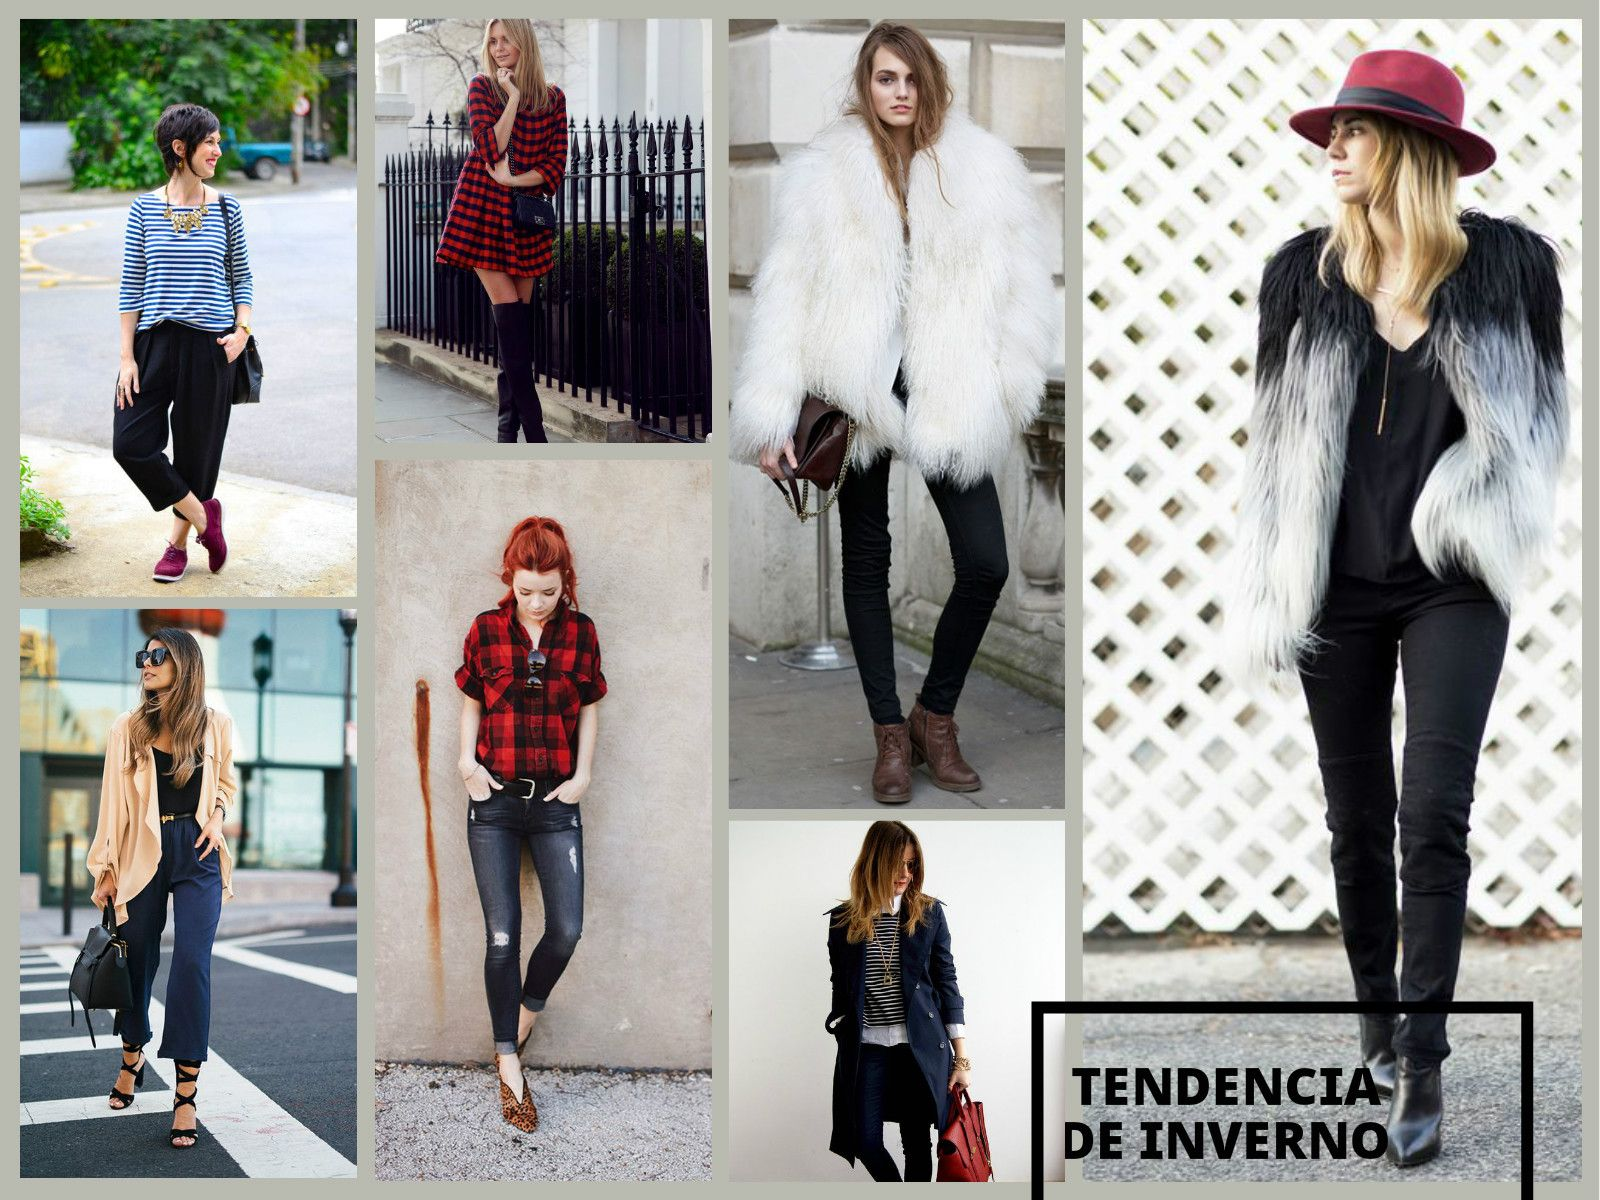 dark blue long sleeve top, fashion blog, fashion week design, fitted ribbed turtleneck, london fashion week street style, looks de inverno, looks de inverno 2017, new to new york, online college finder, presentei a sua mae, presentes para dia das mães, street peeper, top it trends, trench coat for fall, Trend Report, unbroch tartan fabric, winter looks, winter trend, sicaramos, estilopropriobysir